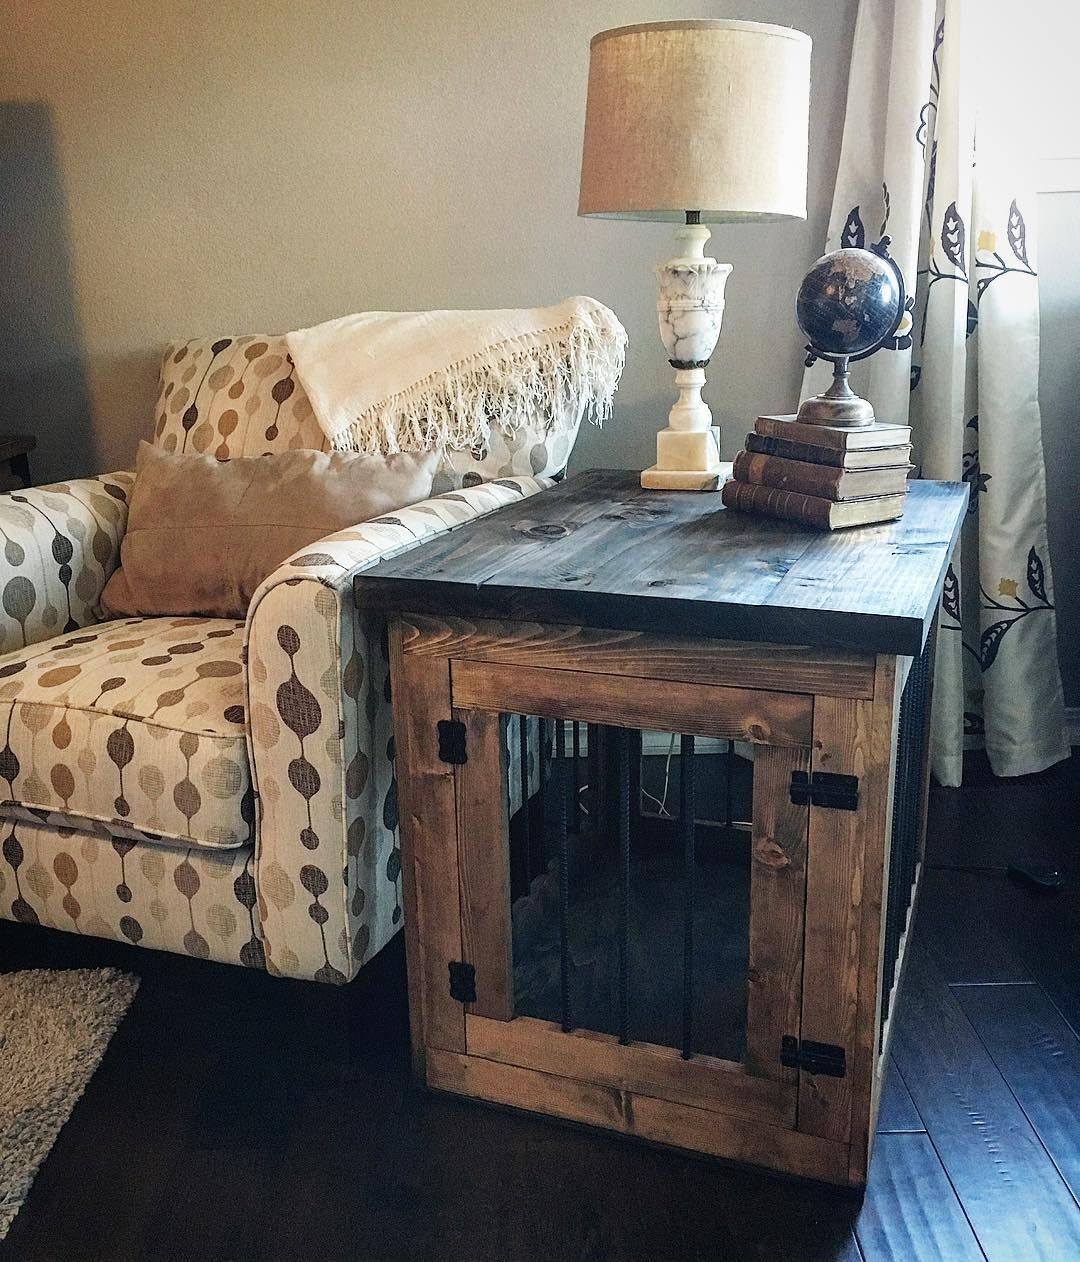 dog furnishing ideas diy small crate end table bench iron living room furniture pipe frame coffee tan leather sofa decorating little crates xenia thomasville french provincial